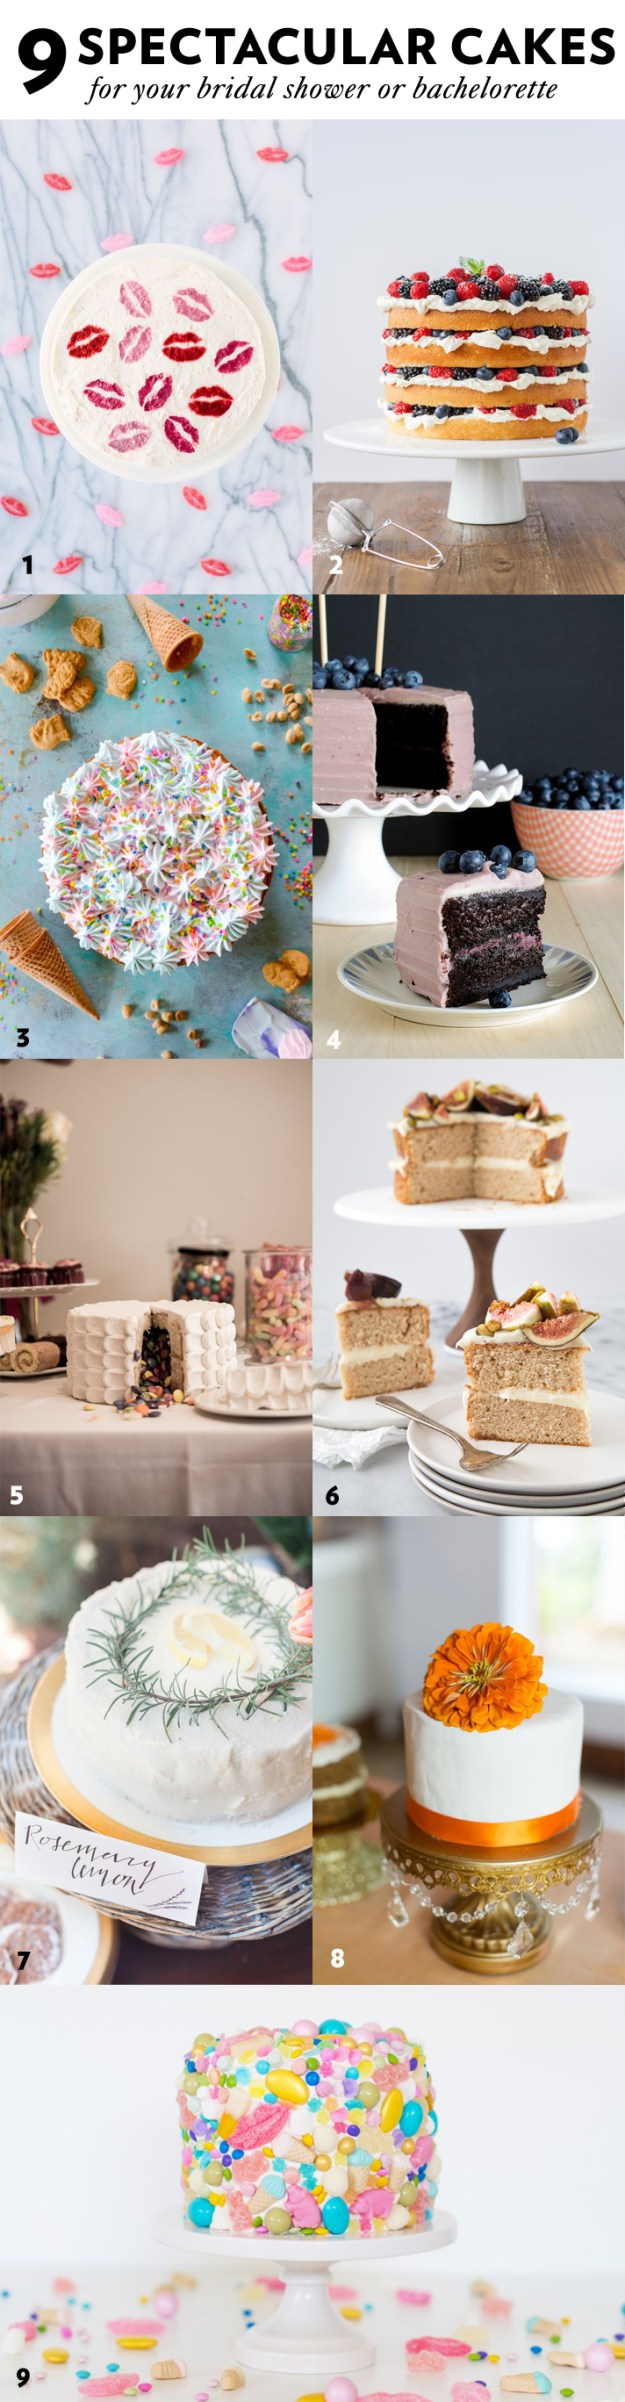 9 Spectacular Cakes For Your Bridal Shower & Bachelorette Party